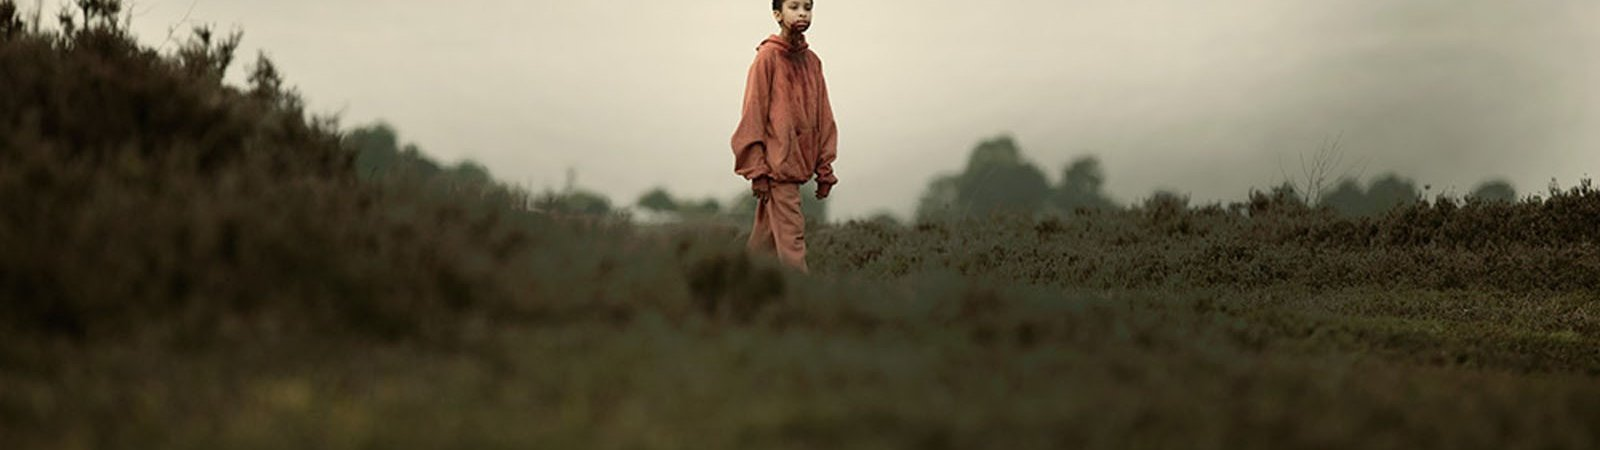 Photo dernier film Paddy Considine